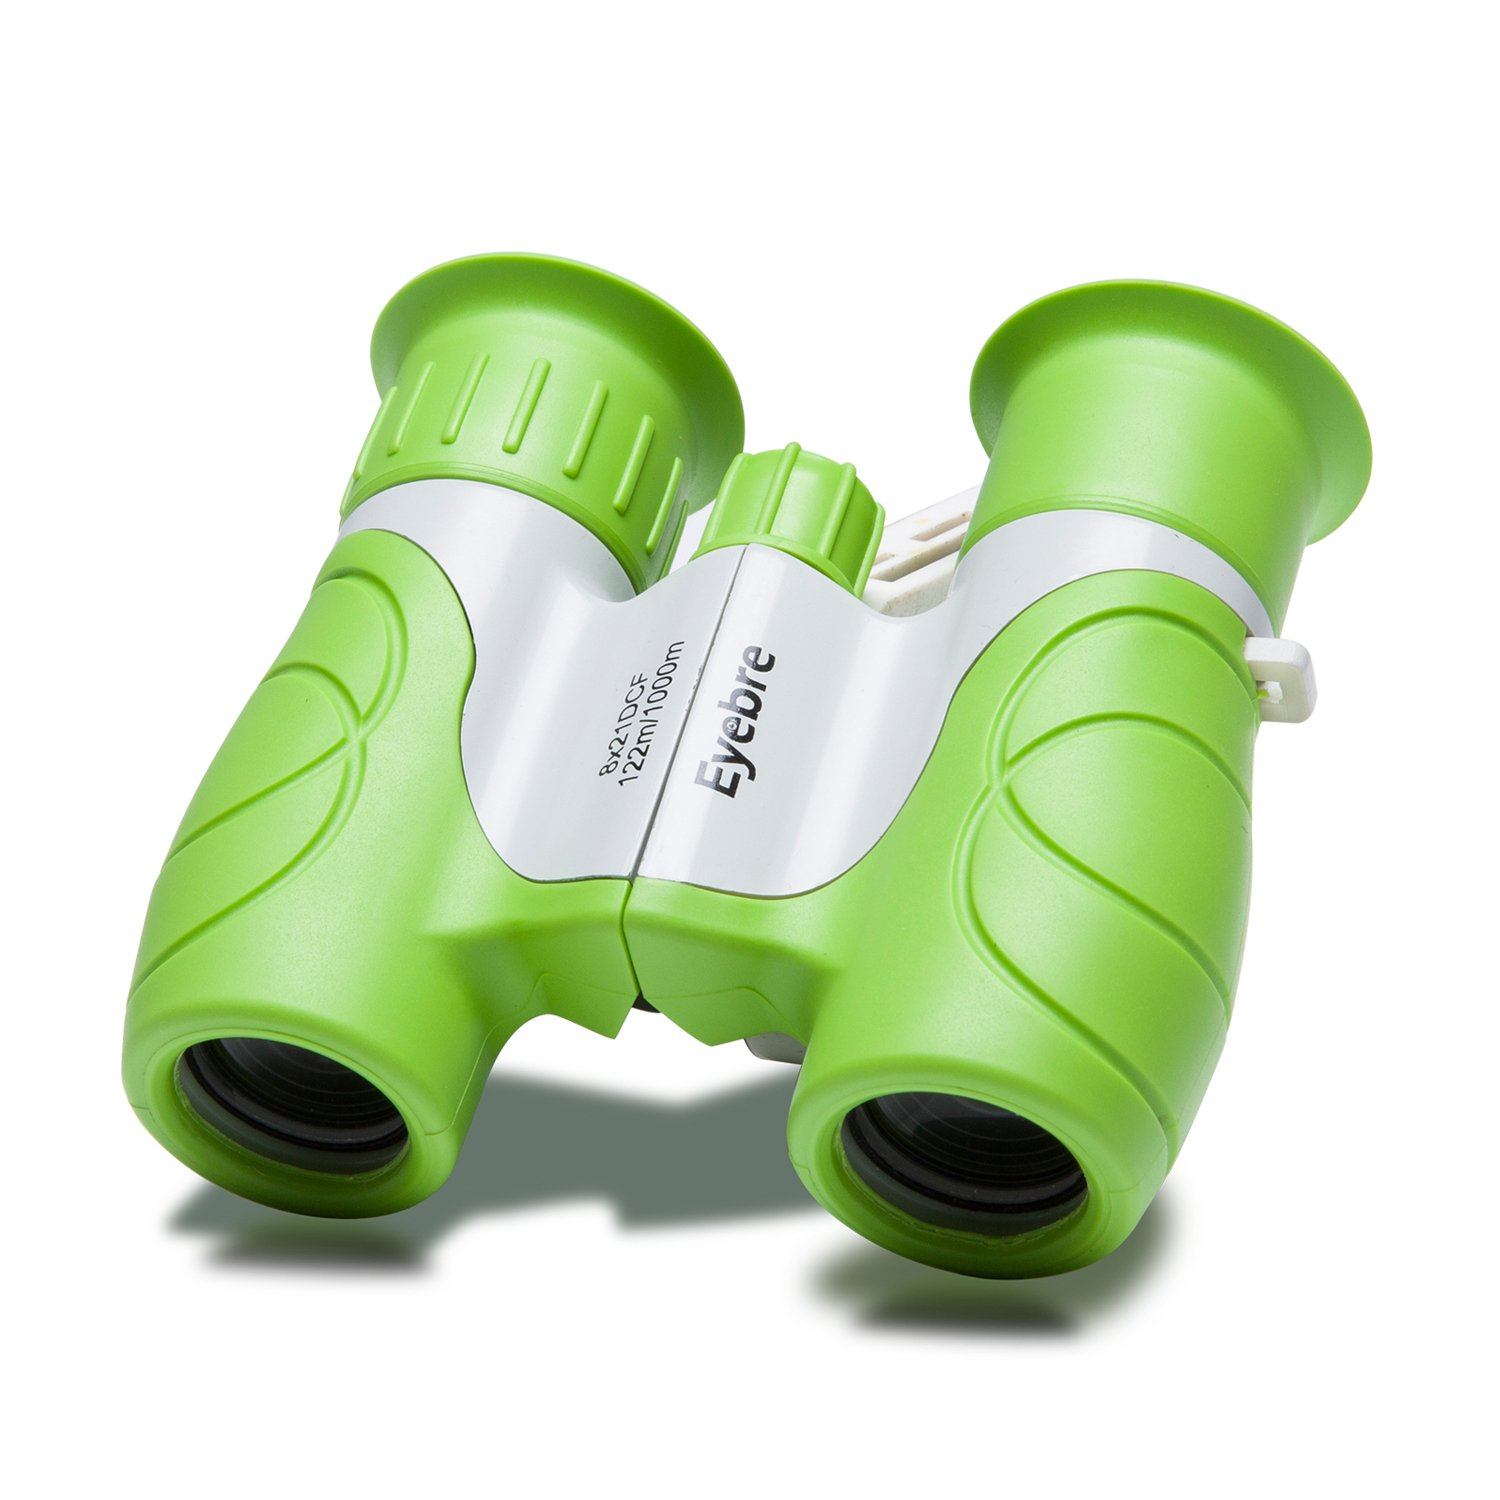 Binoculars For Kids Toys For Boys And Girls Top Rated Boys birthday gifts Kids outdoor toys Shock Proof Binoculars Set 8x21 - Bird Watching - Educational Learning - Hunting - Outdoor Camping - Hiking